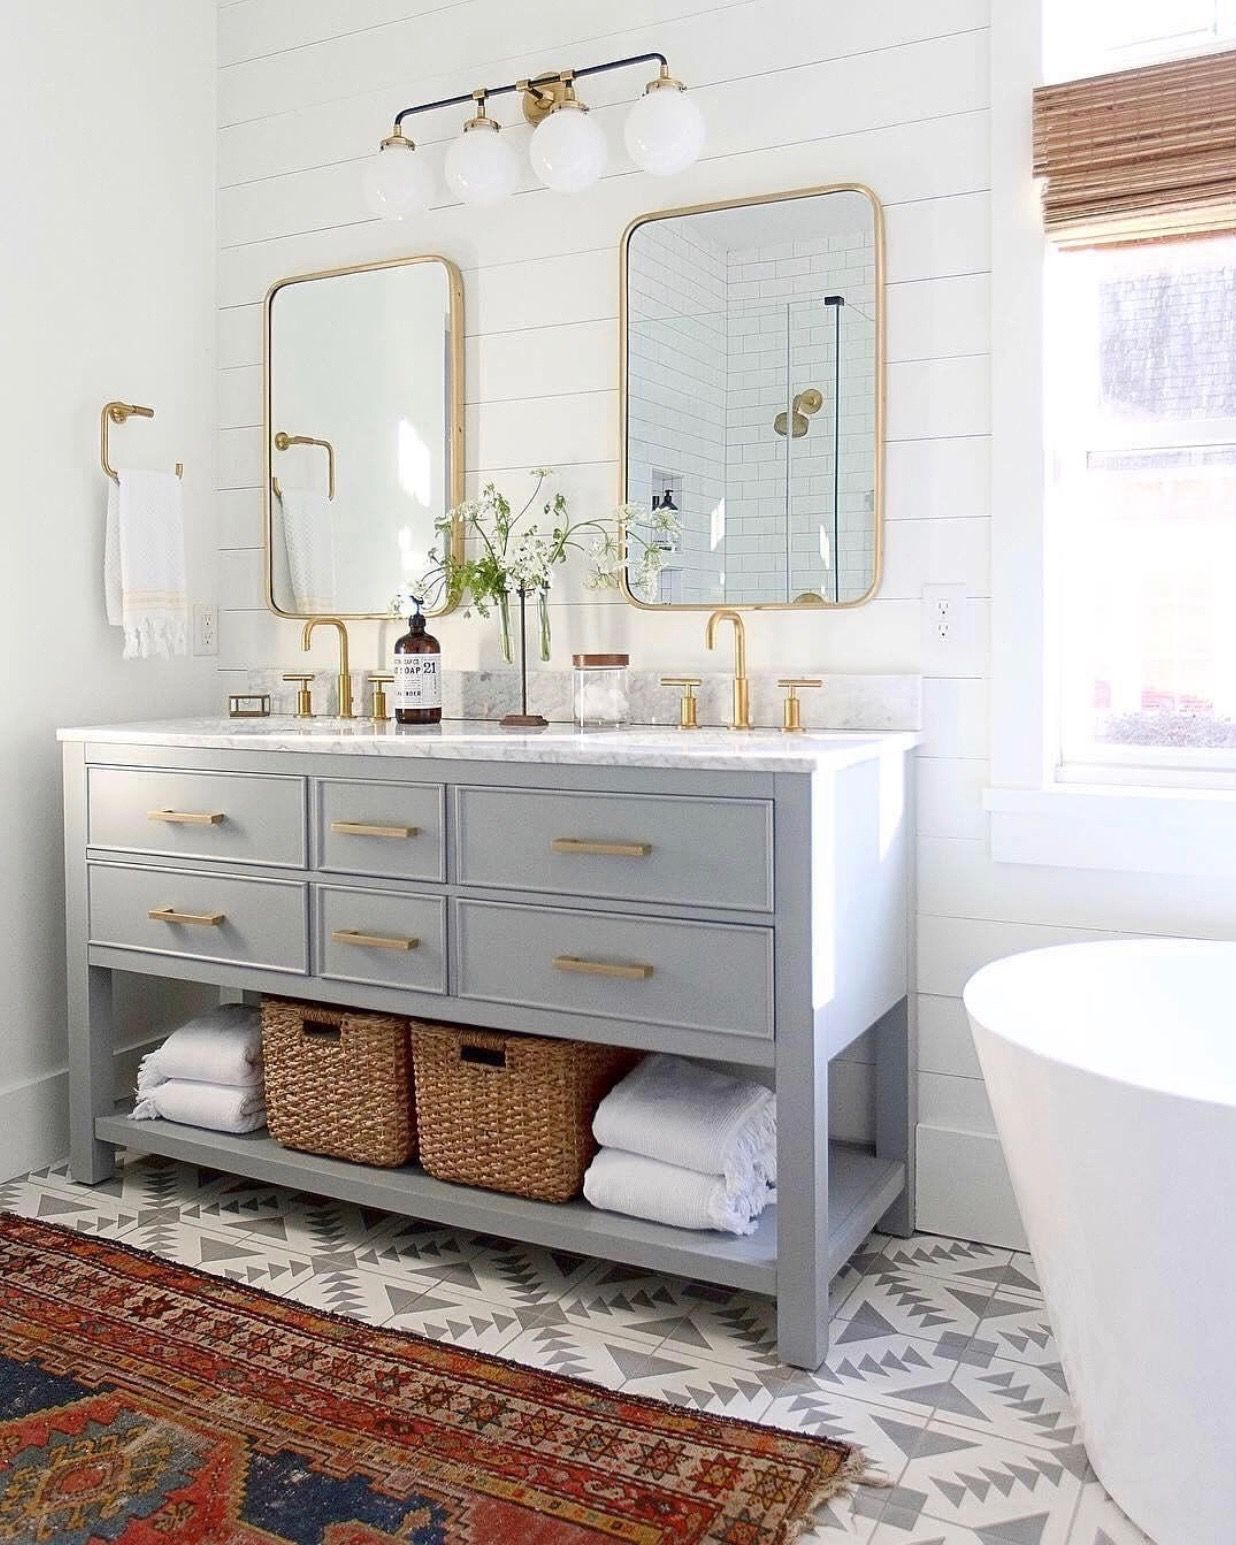 Looking For Bathroom Mirrors See These 1 Best 45 Amazing Mirror Ideas To Inspire Your Next Project Bathroommirrorlighting Bathroomvanityideas